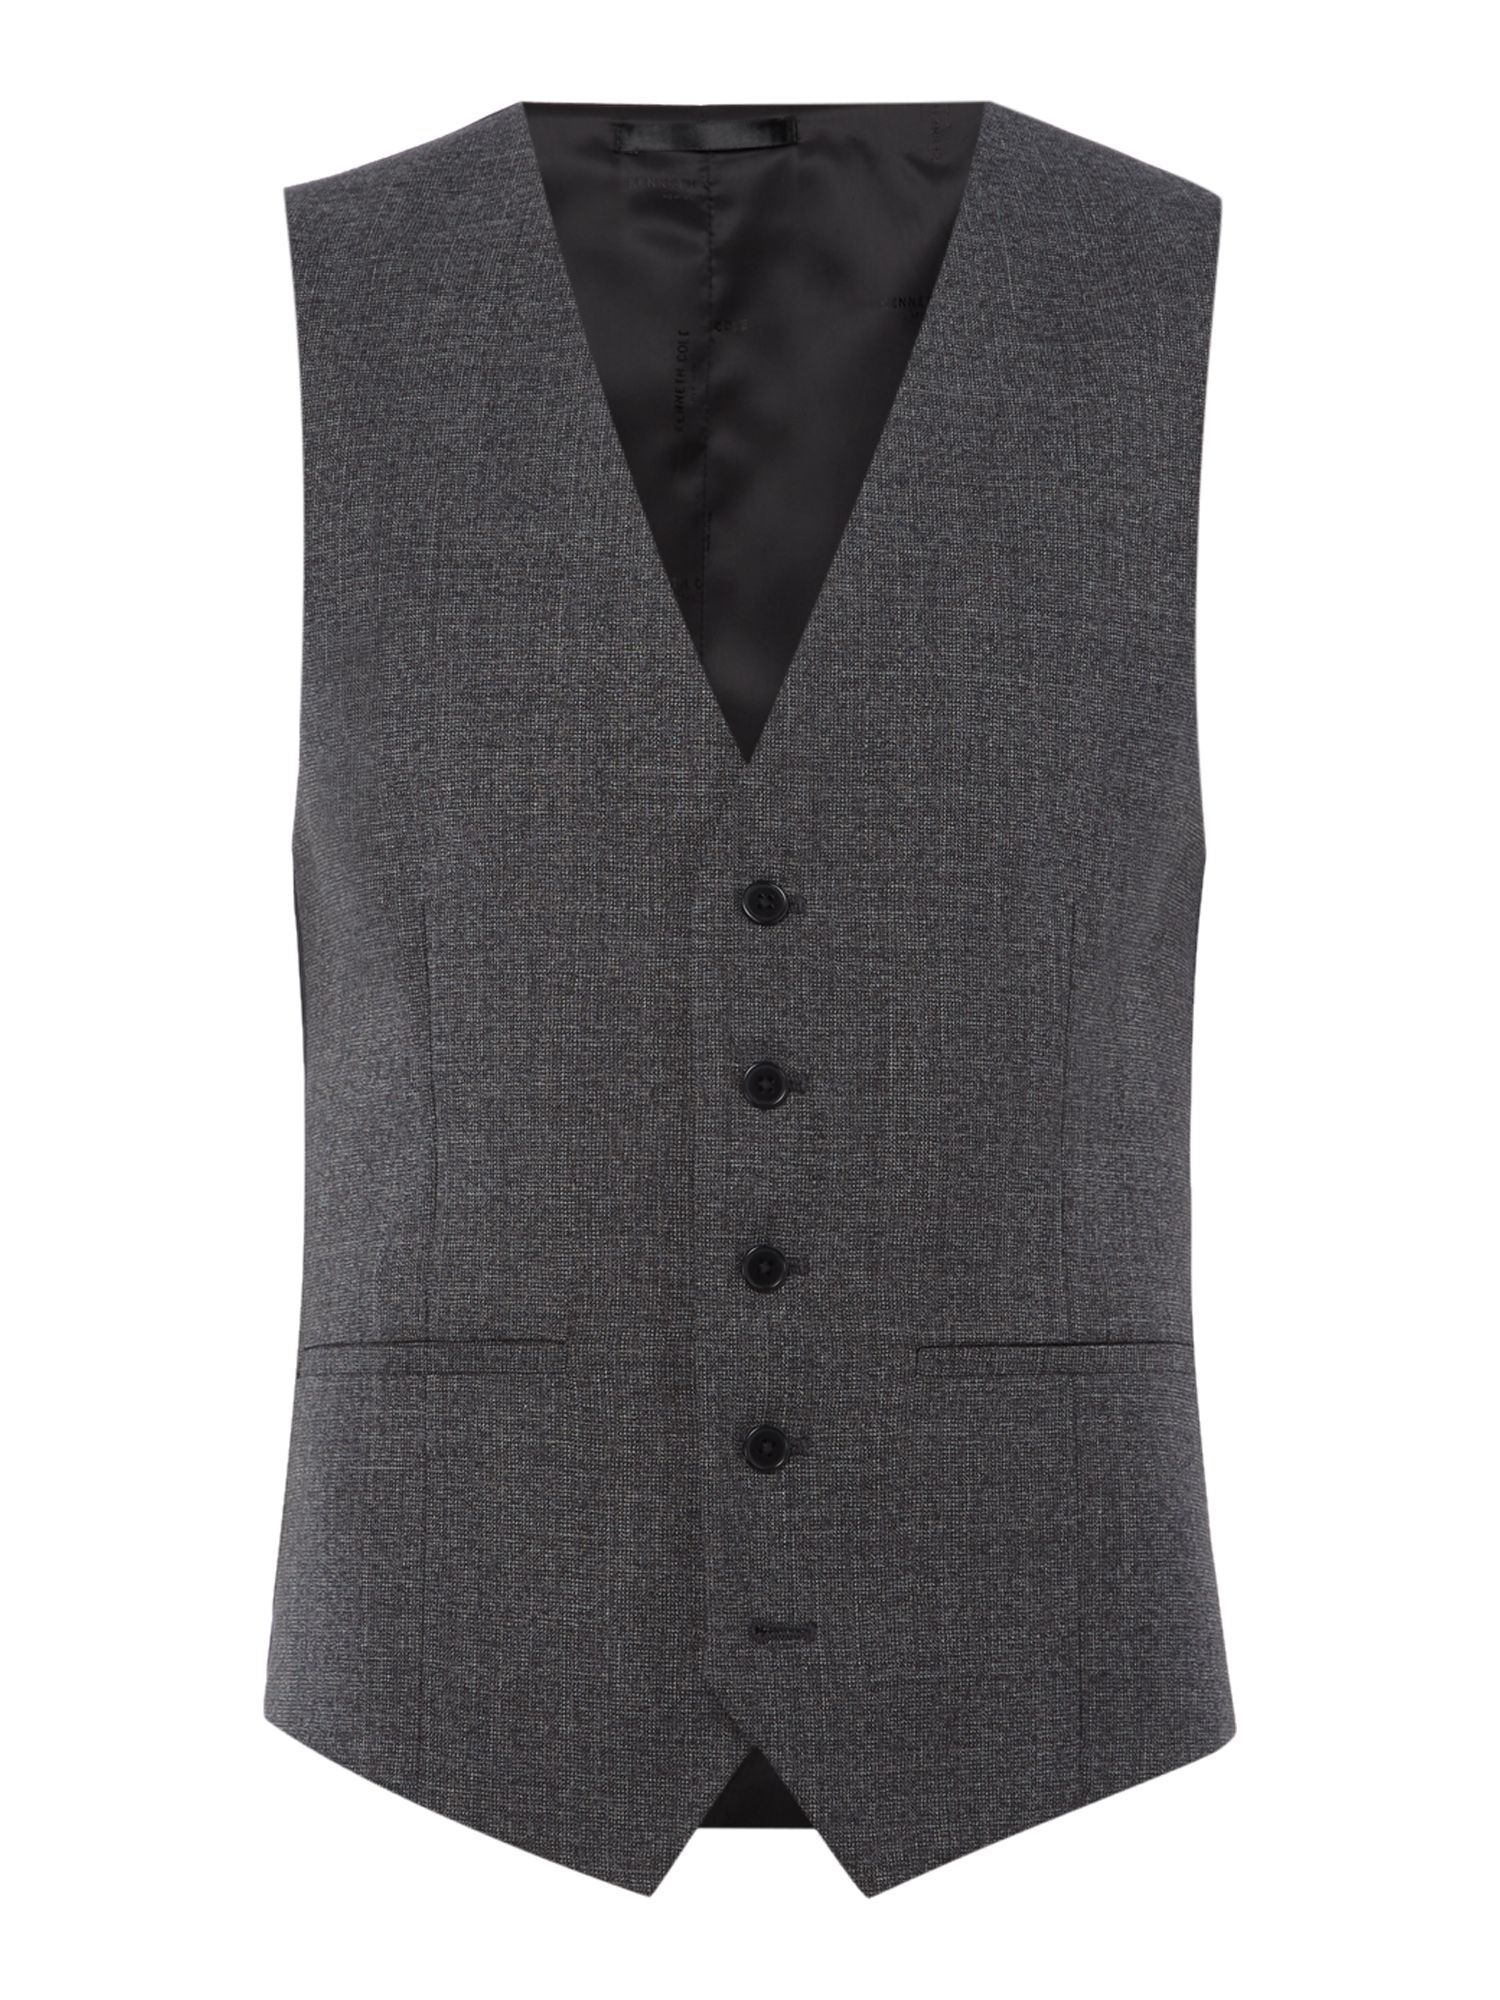 Mens Kenneth Cole Parsons Slim Fit Textured Waistcoat Charcoal